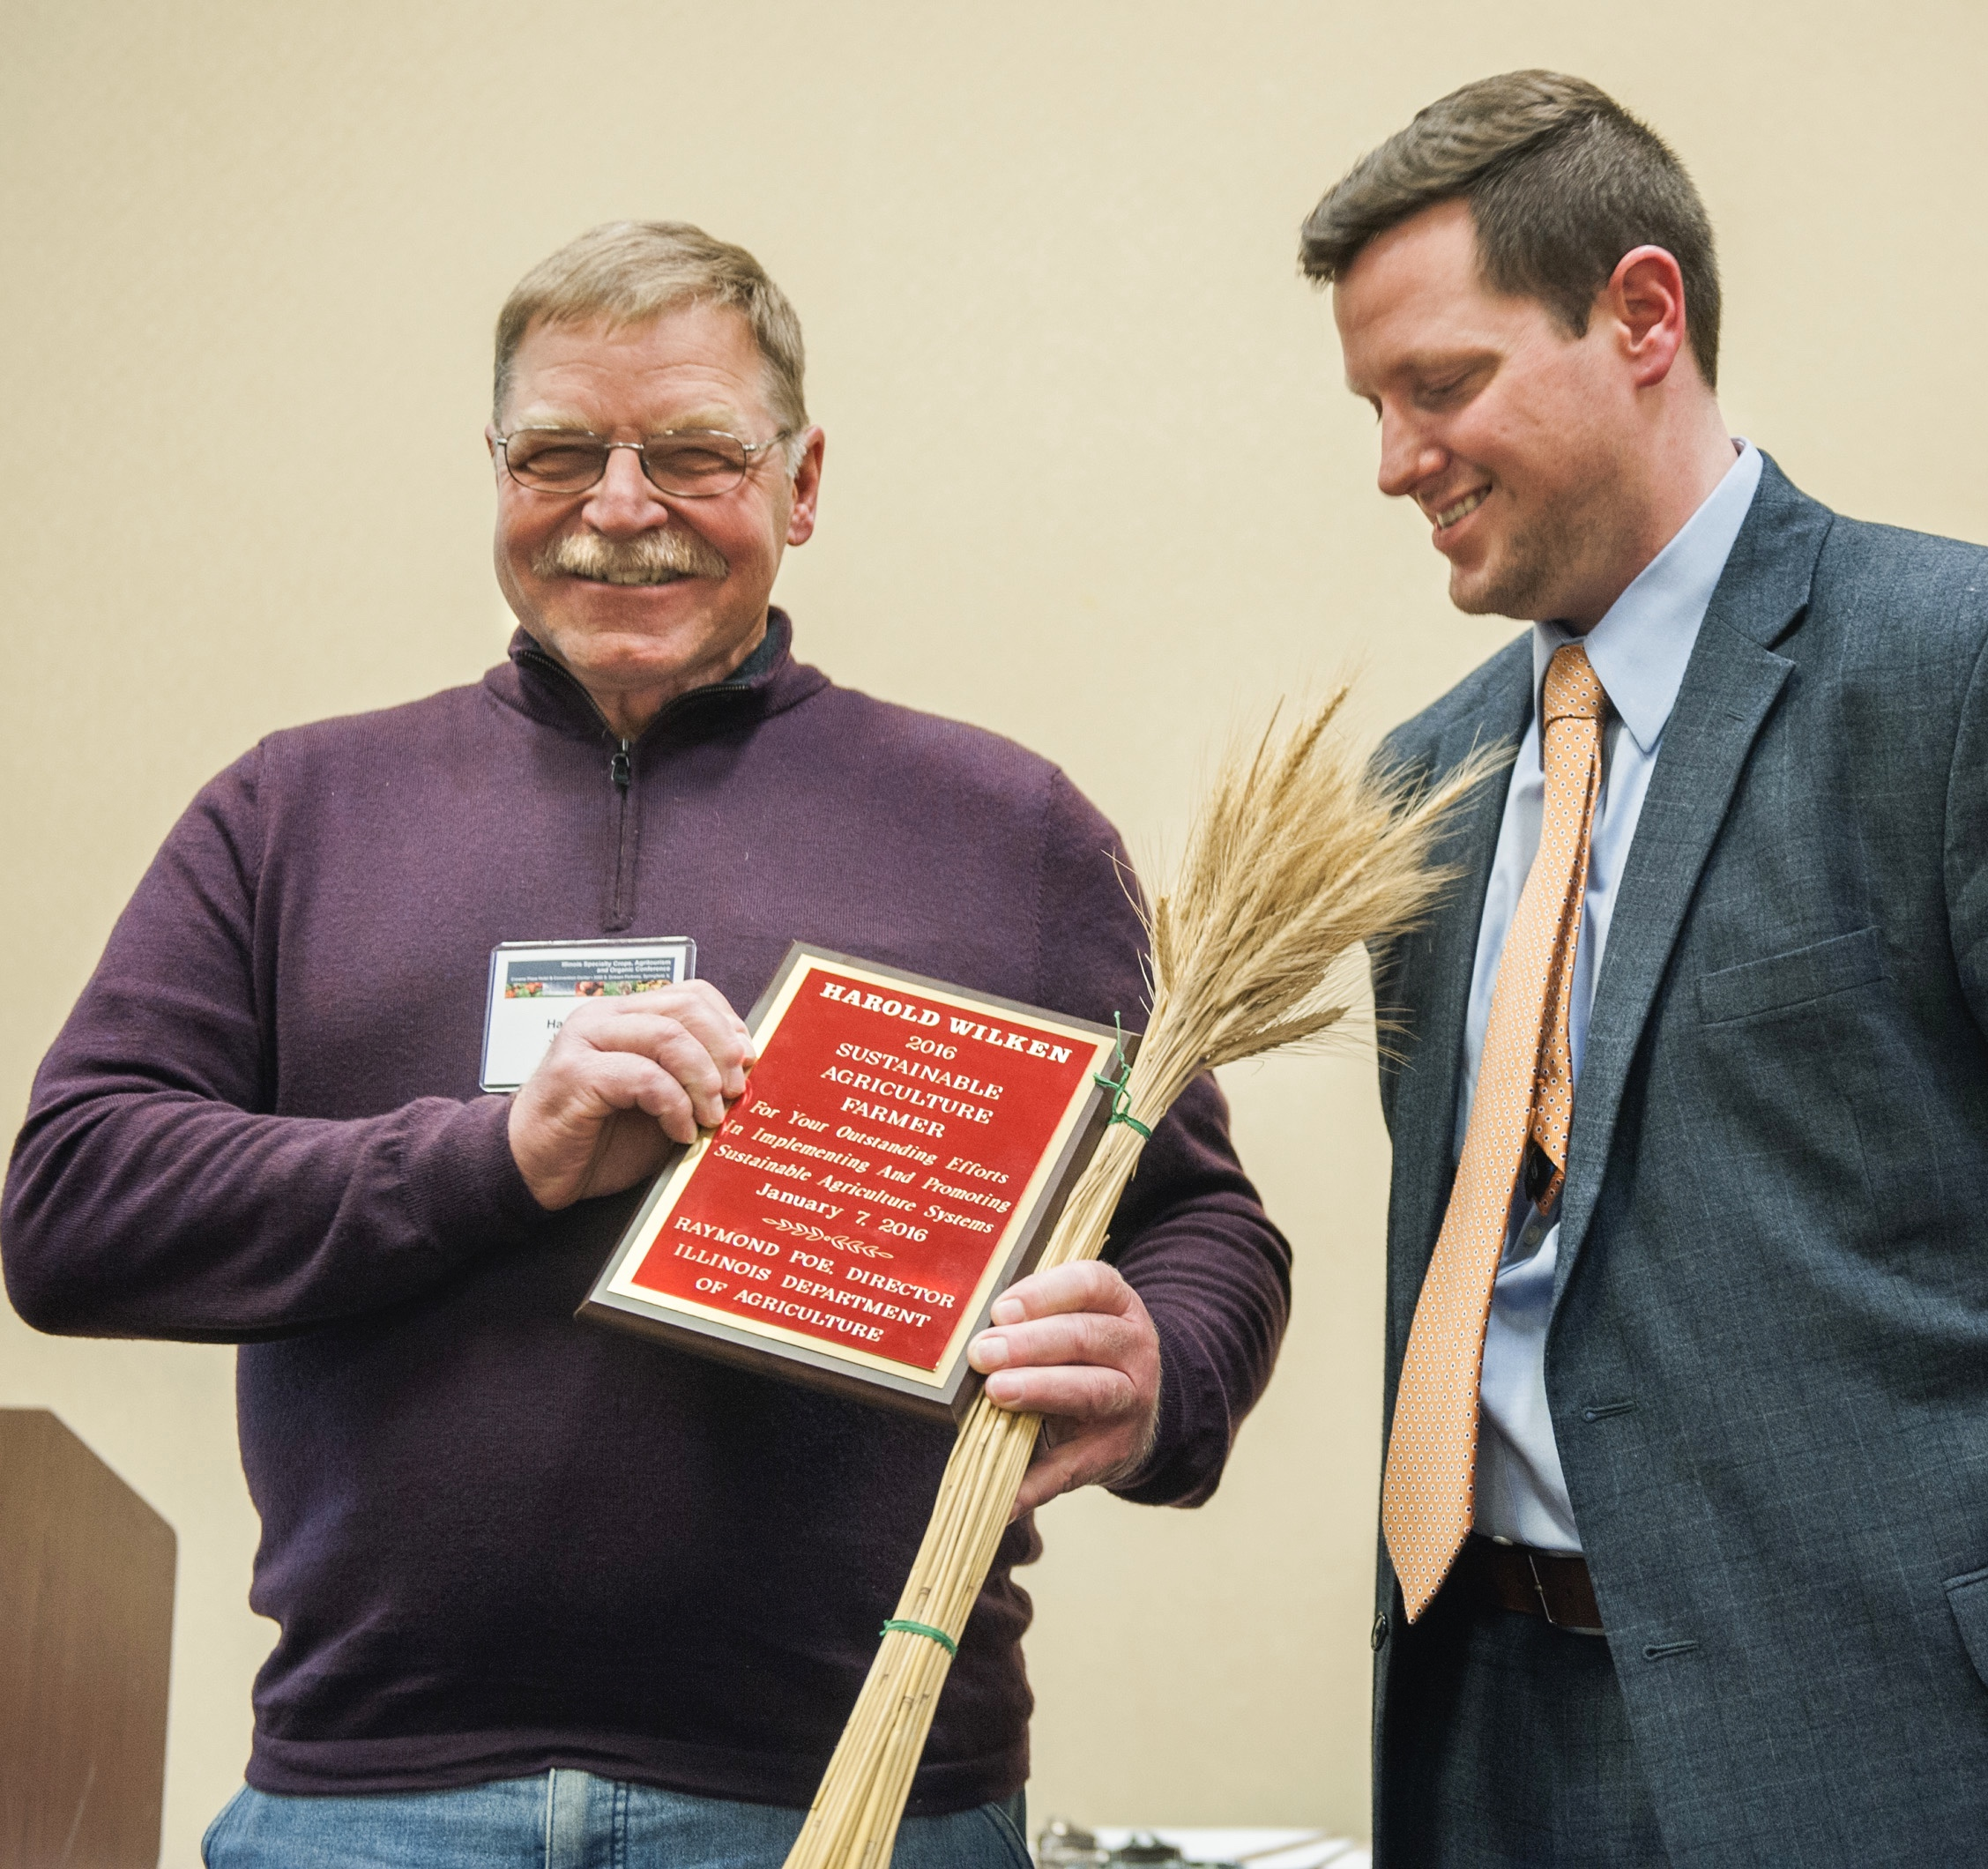 Harold Wilken was honored with the R. J. Vollmer Award by the Illinois Department of Agriculture .